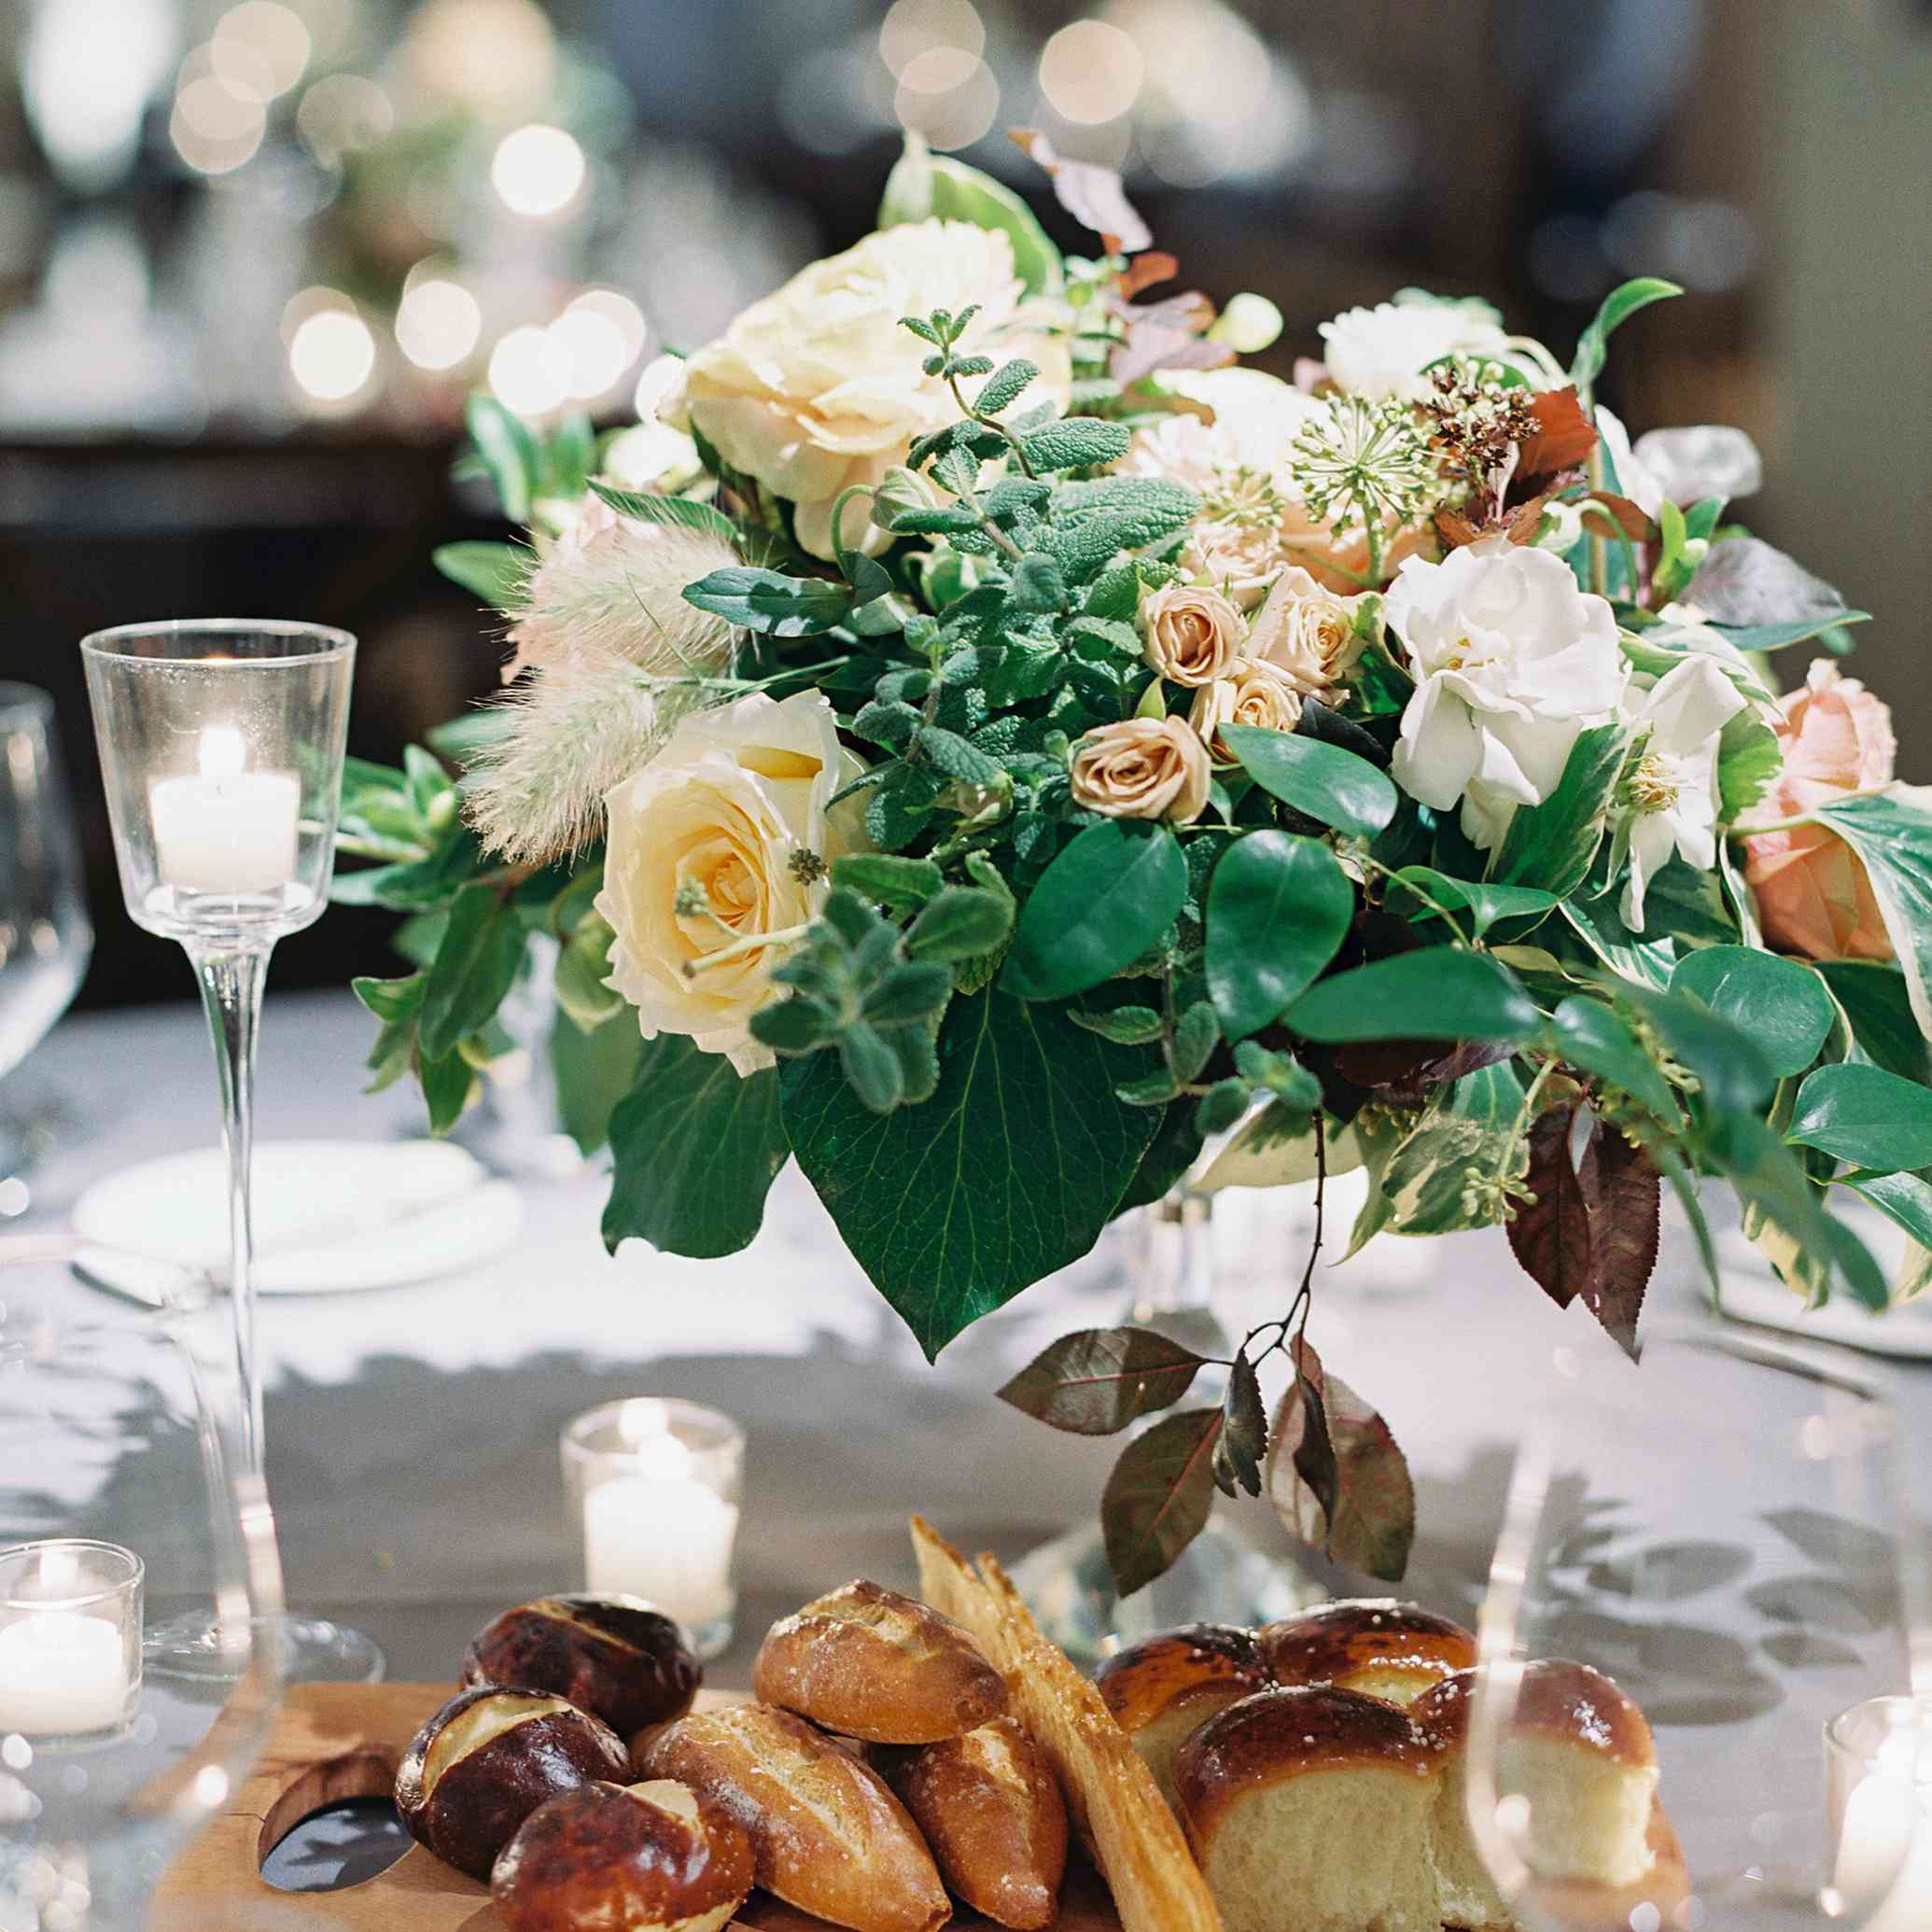 bread for the table and floral centerpieces